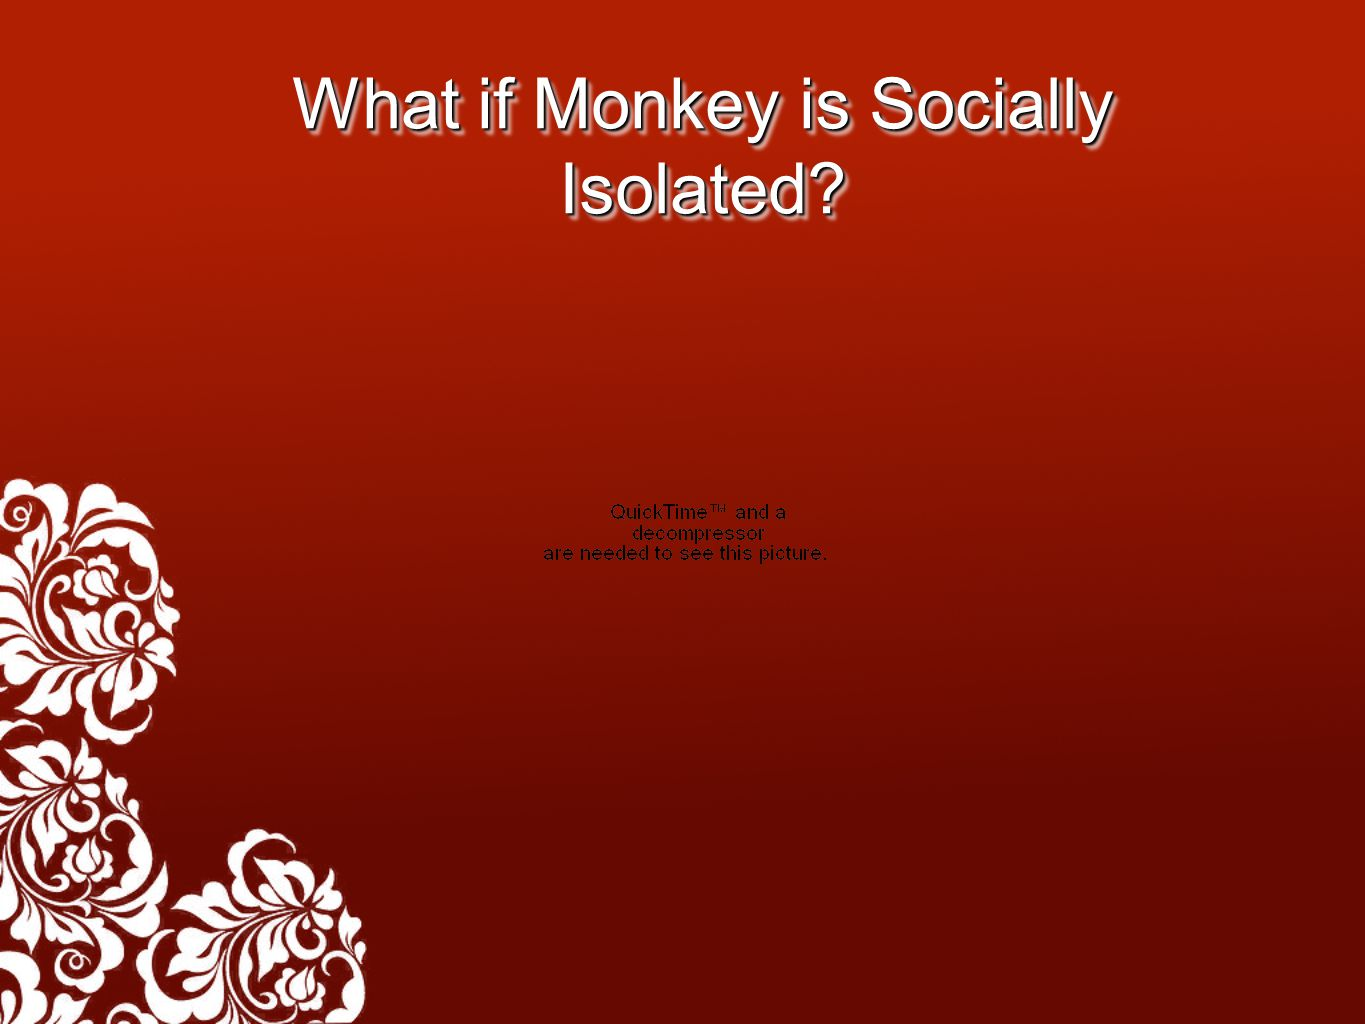 What if Monkey is Socially Isolated?